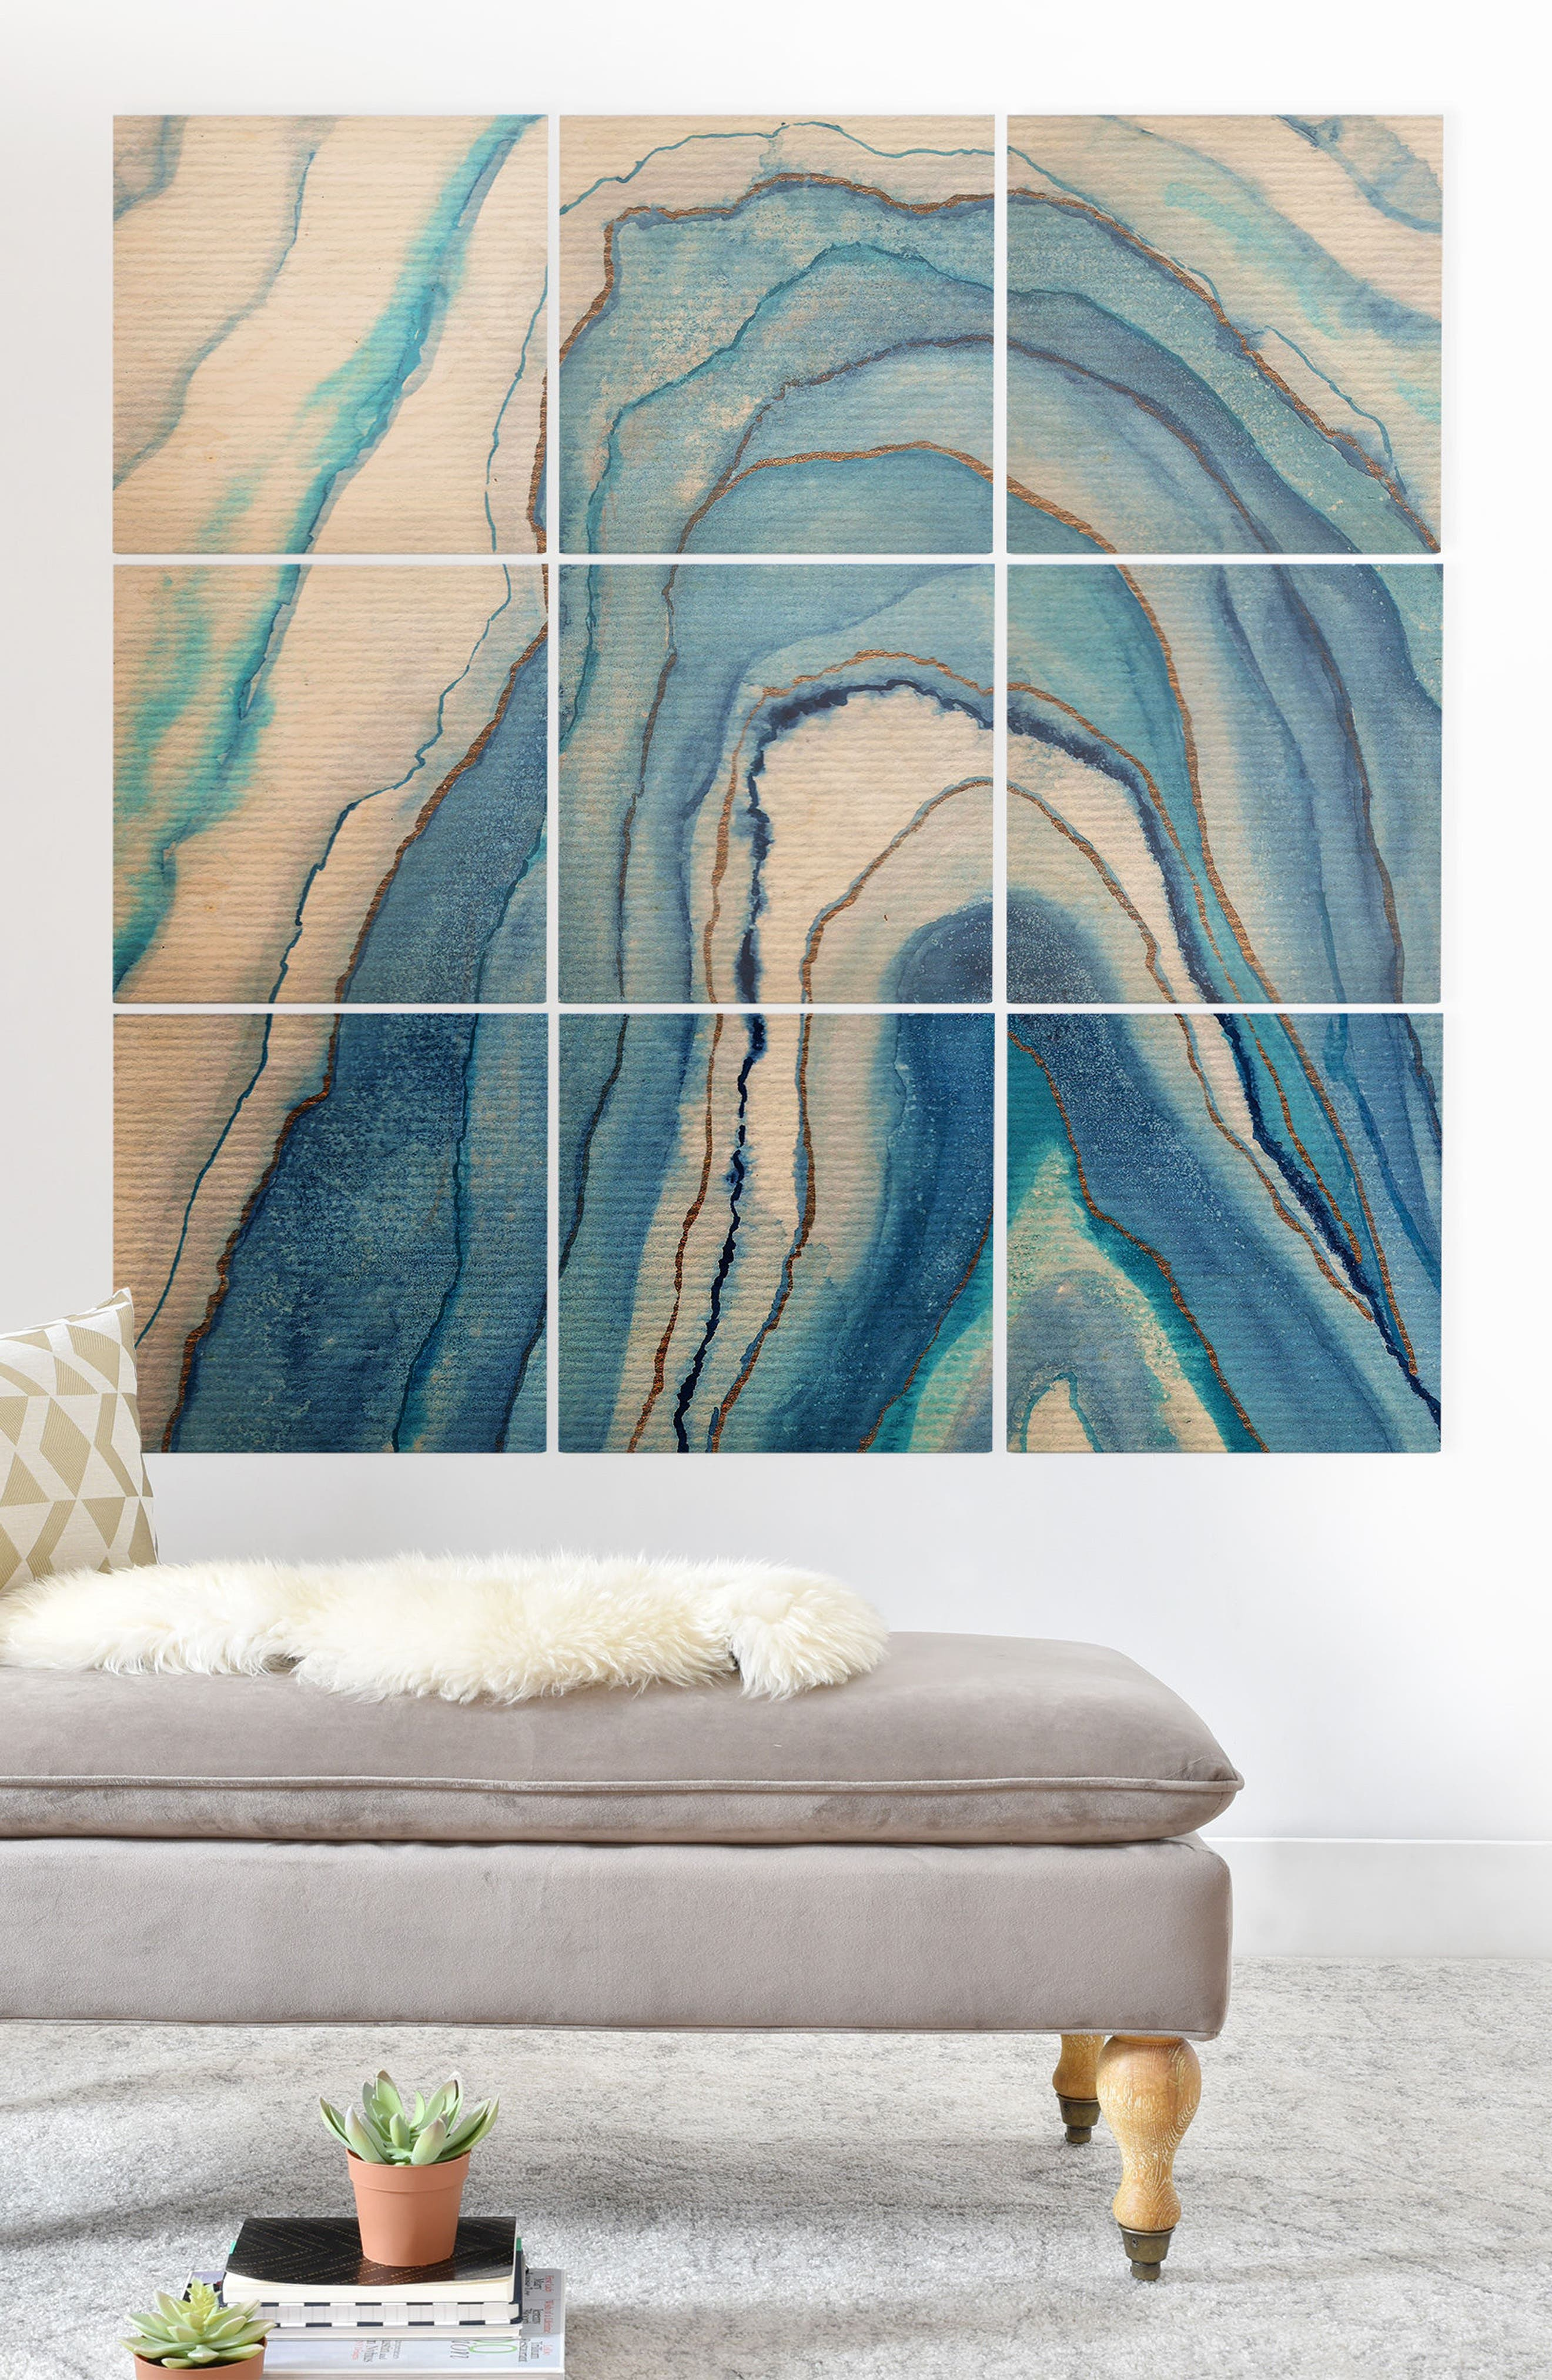 Watercolor 9-Piece Wood Wall Mural,                             Alternate thumbnail 2, color,                             Blue